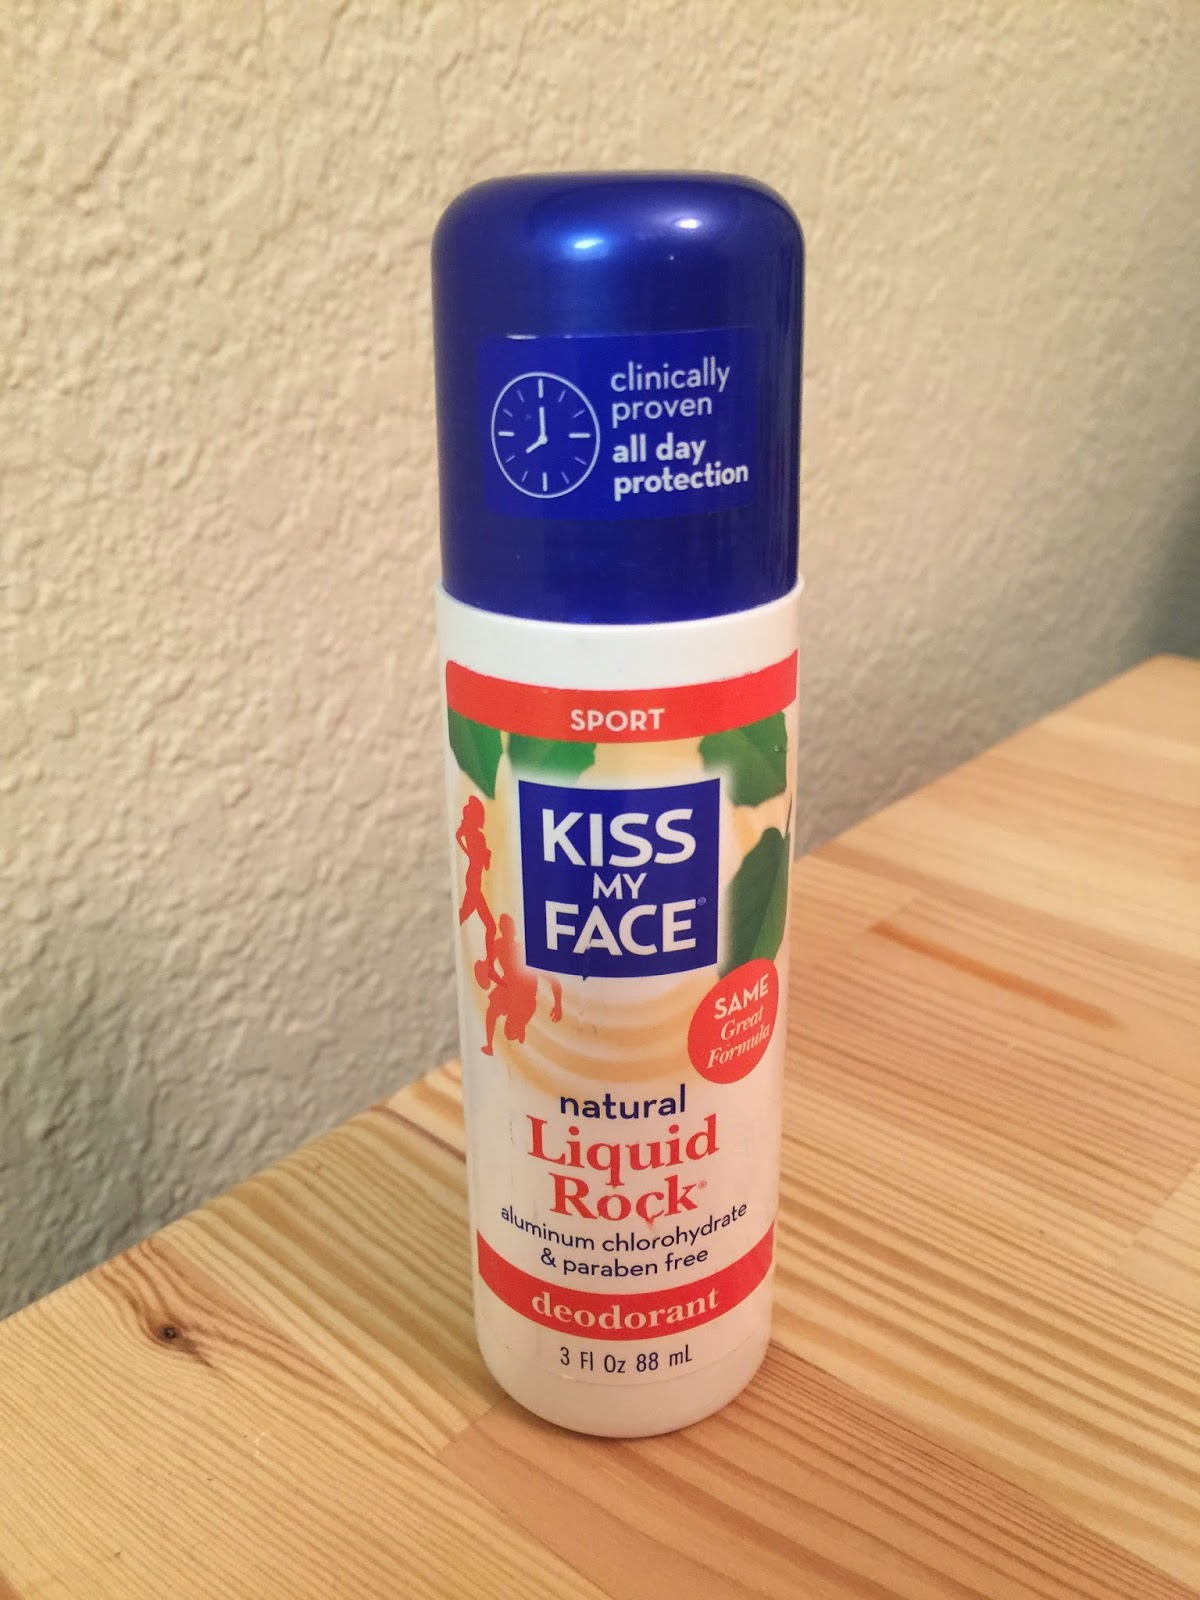 Product Review: Kiss My Face Liquid Rock Deodorant